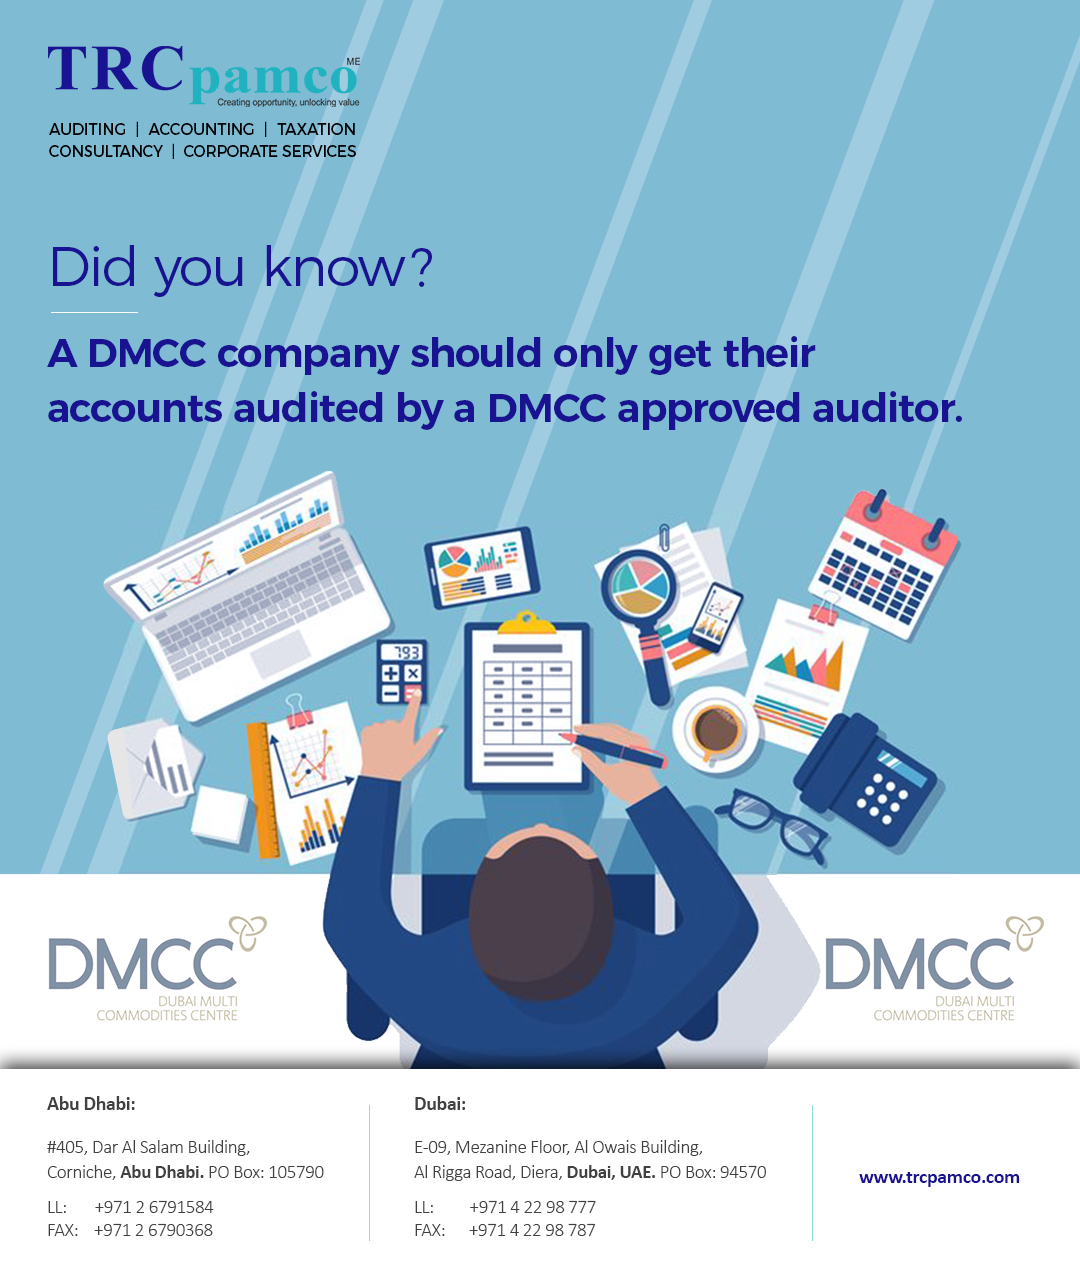 DMCC provides a list of approved auditors on it's website